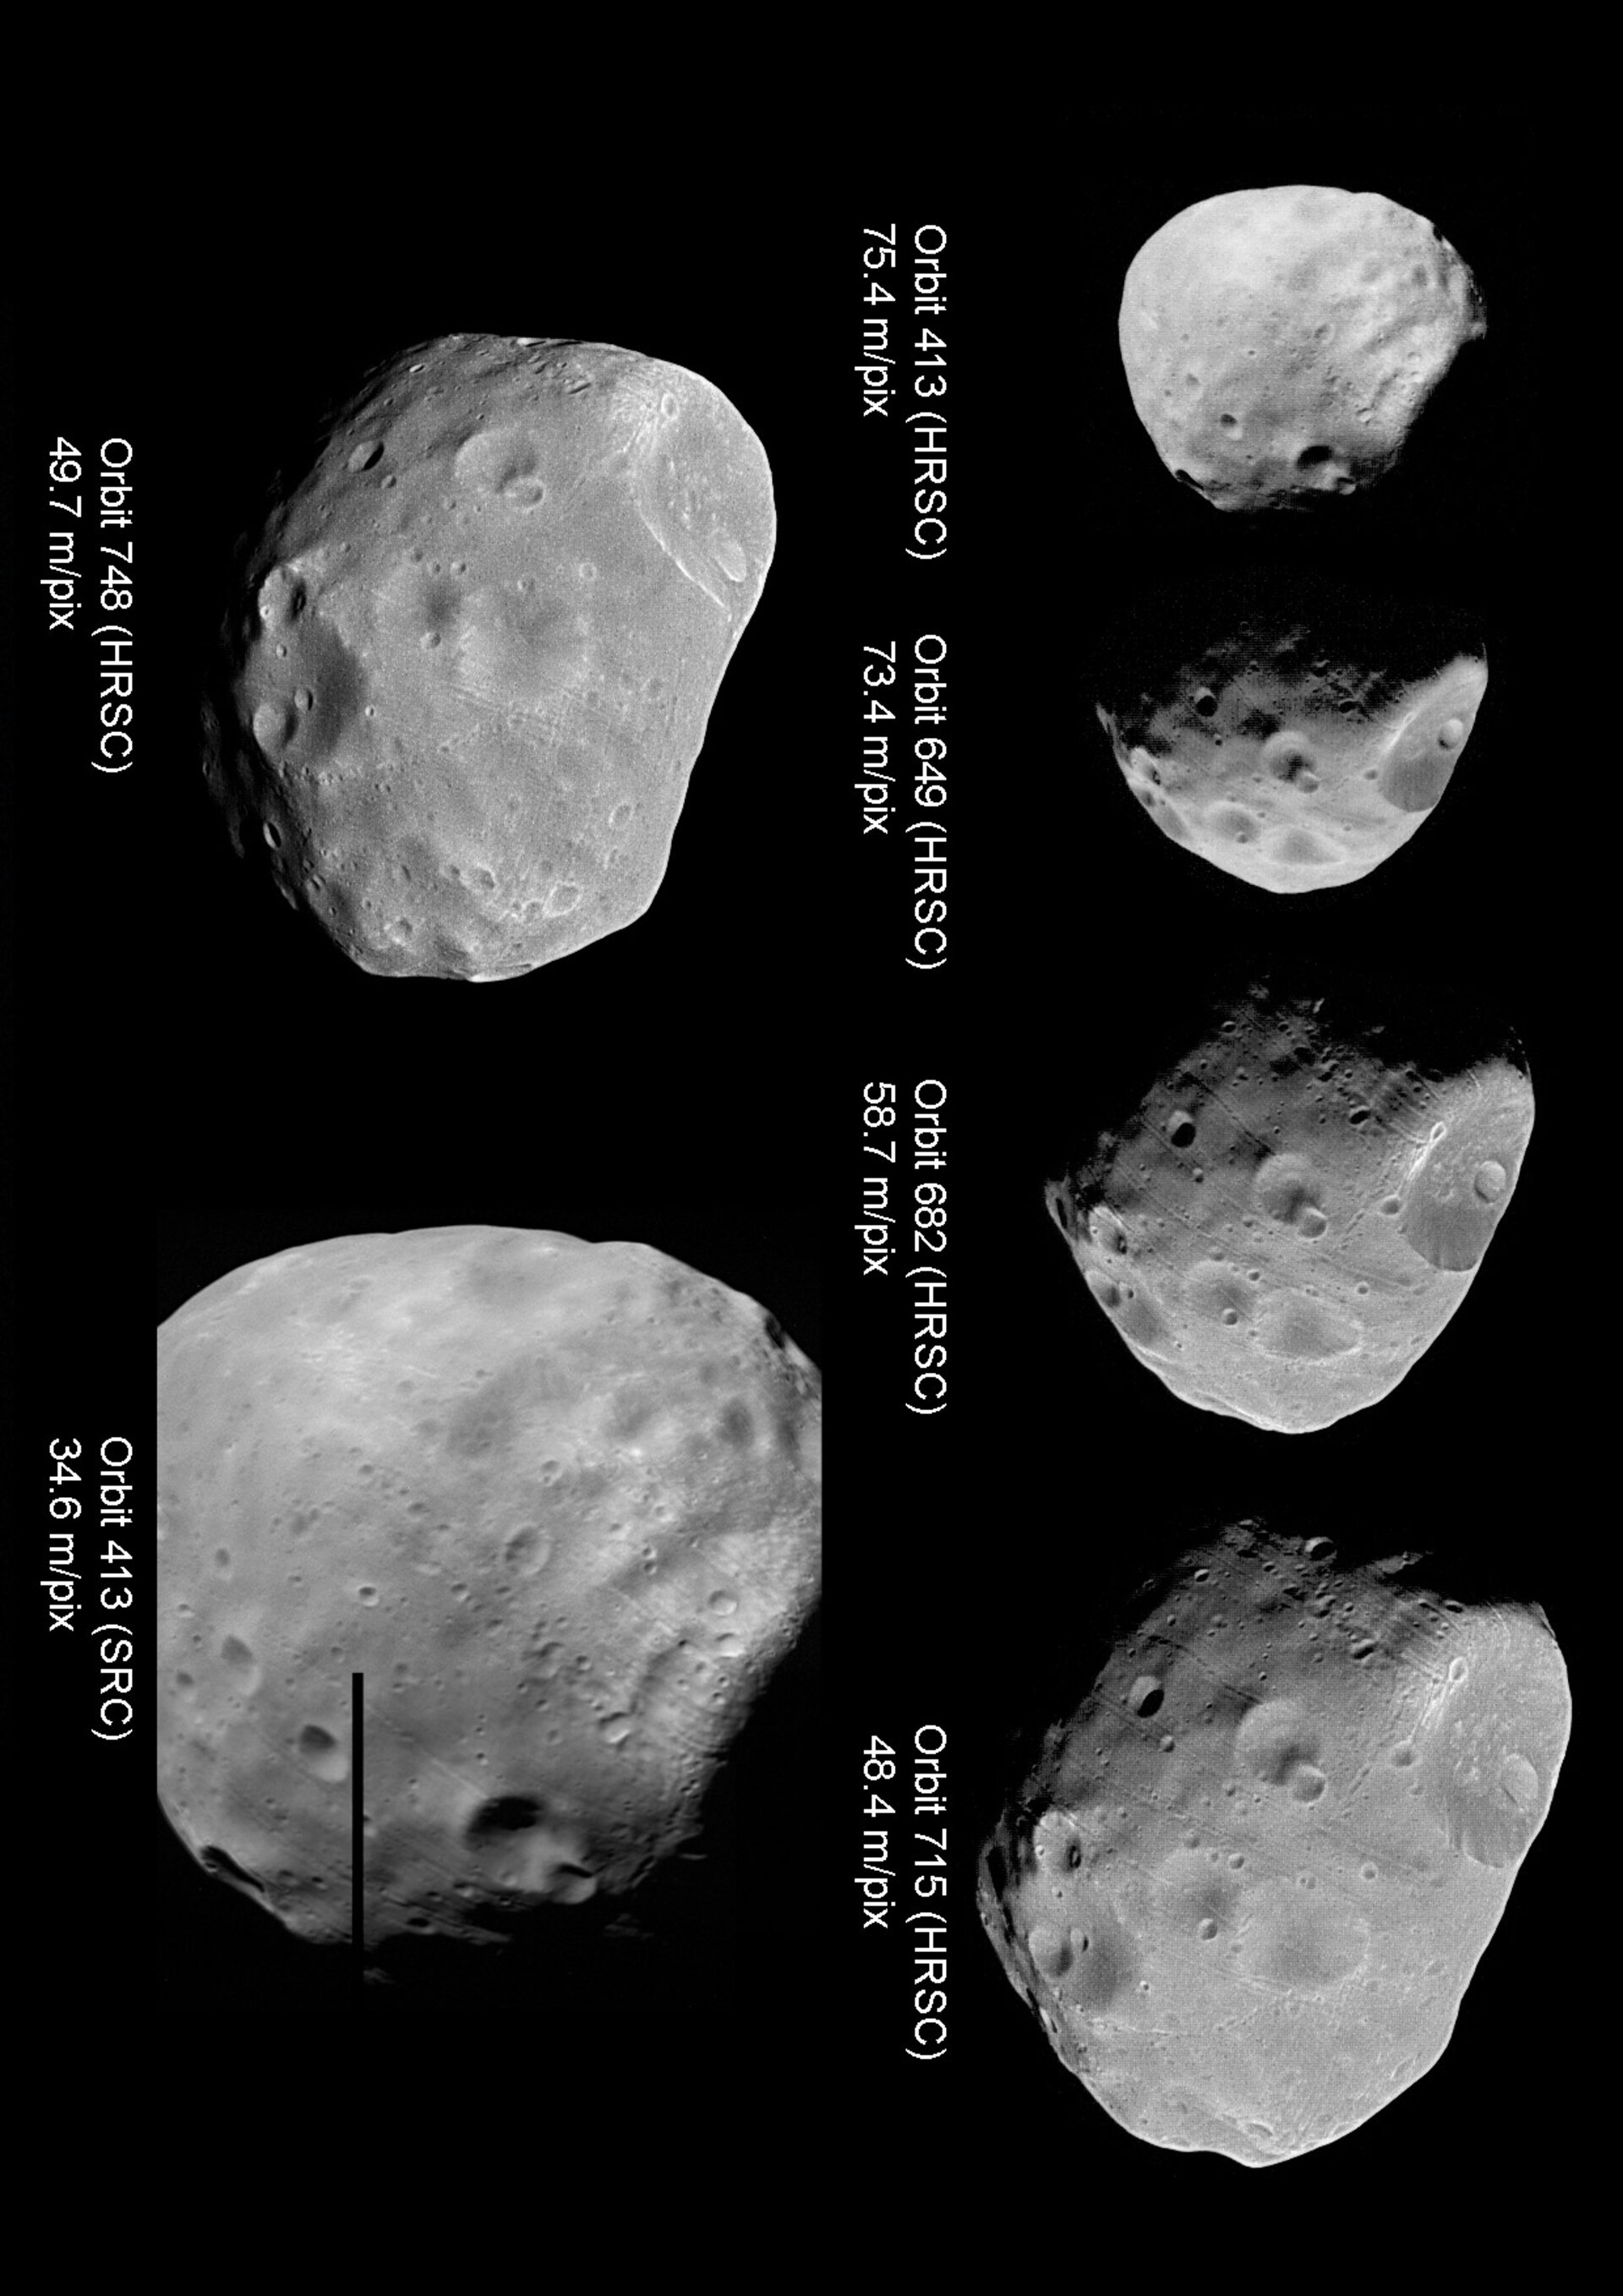 Collection of Phobos images from different orbit passes